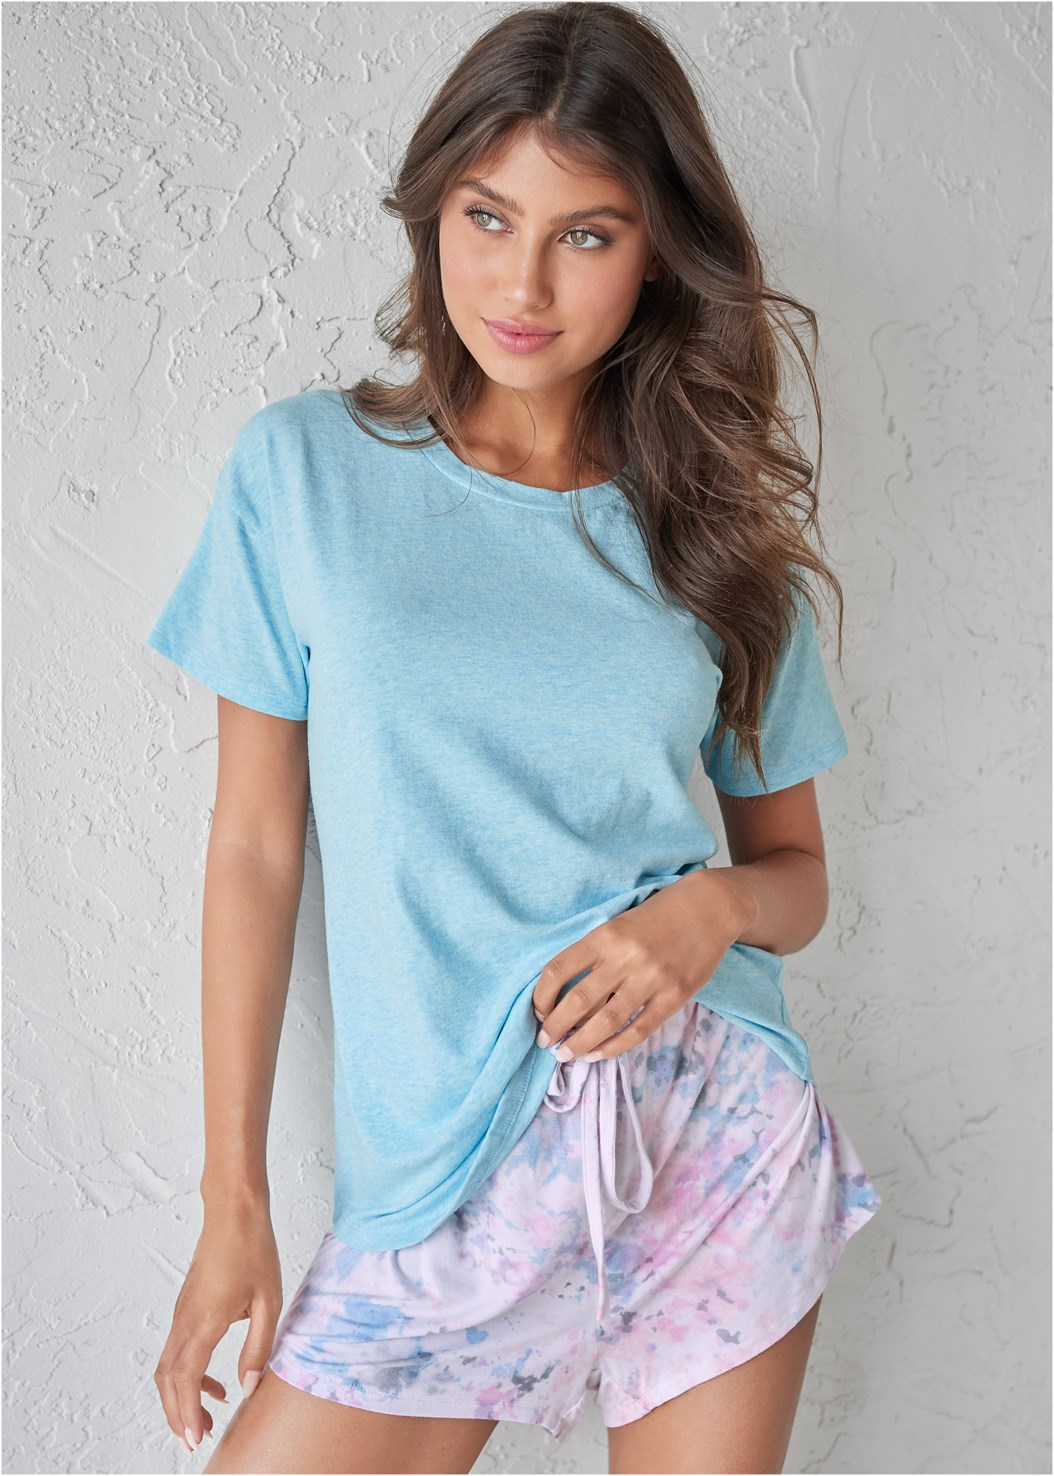 Sleep T-Shirt,Sleep Shorts,Palazzo Sleep Pant